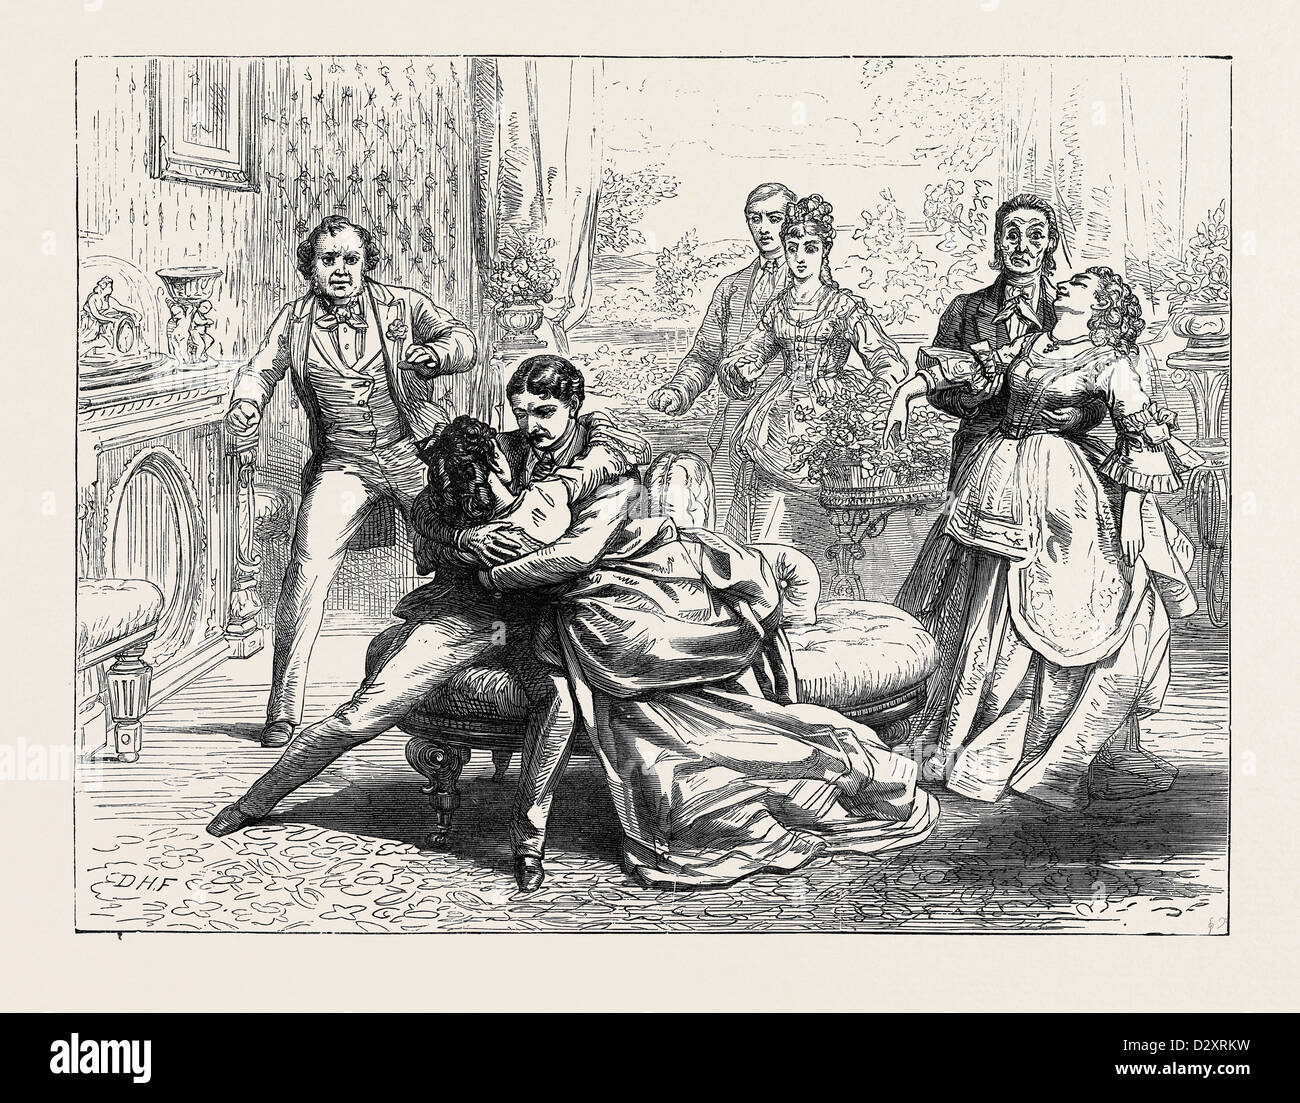 SCENE FROM PARTNERS FOR LIFE AT THE GLOBE THEATRE LONDON 1871 - Stock Image